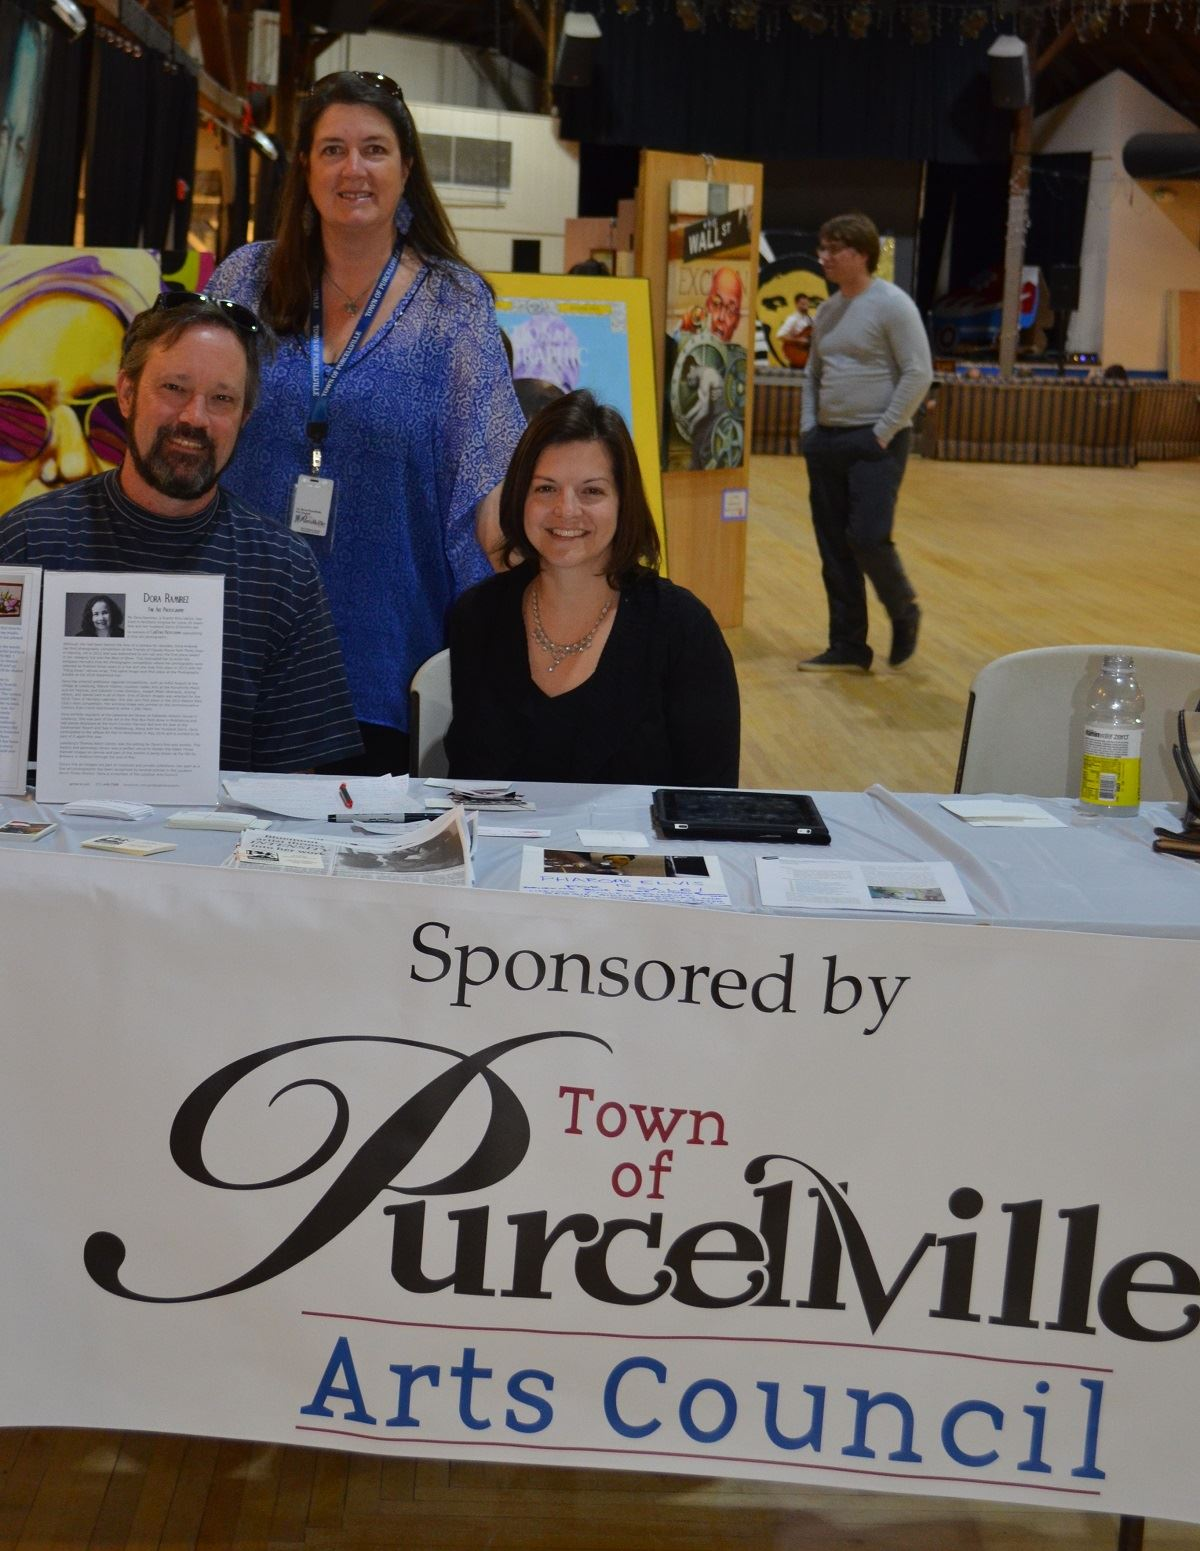 Art, Purcellville Arts Council Table